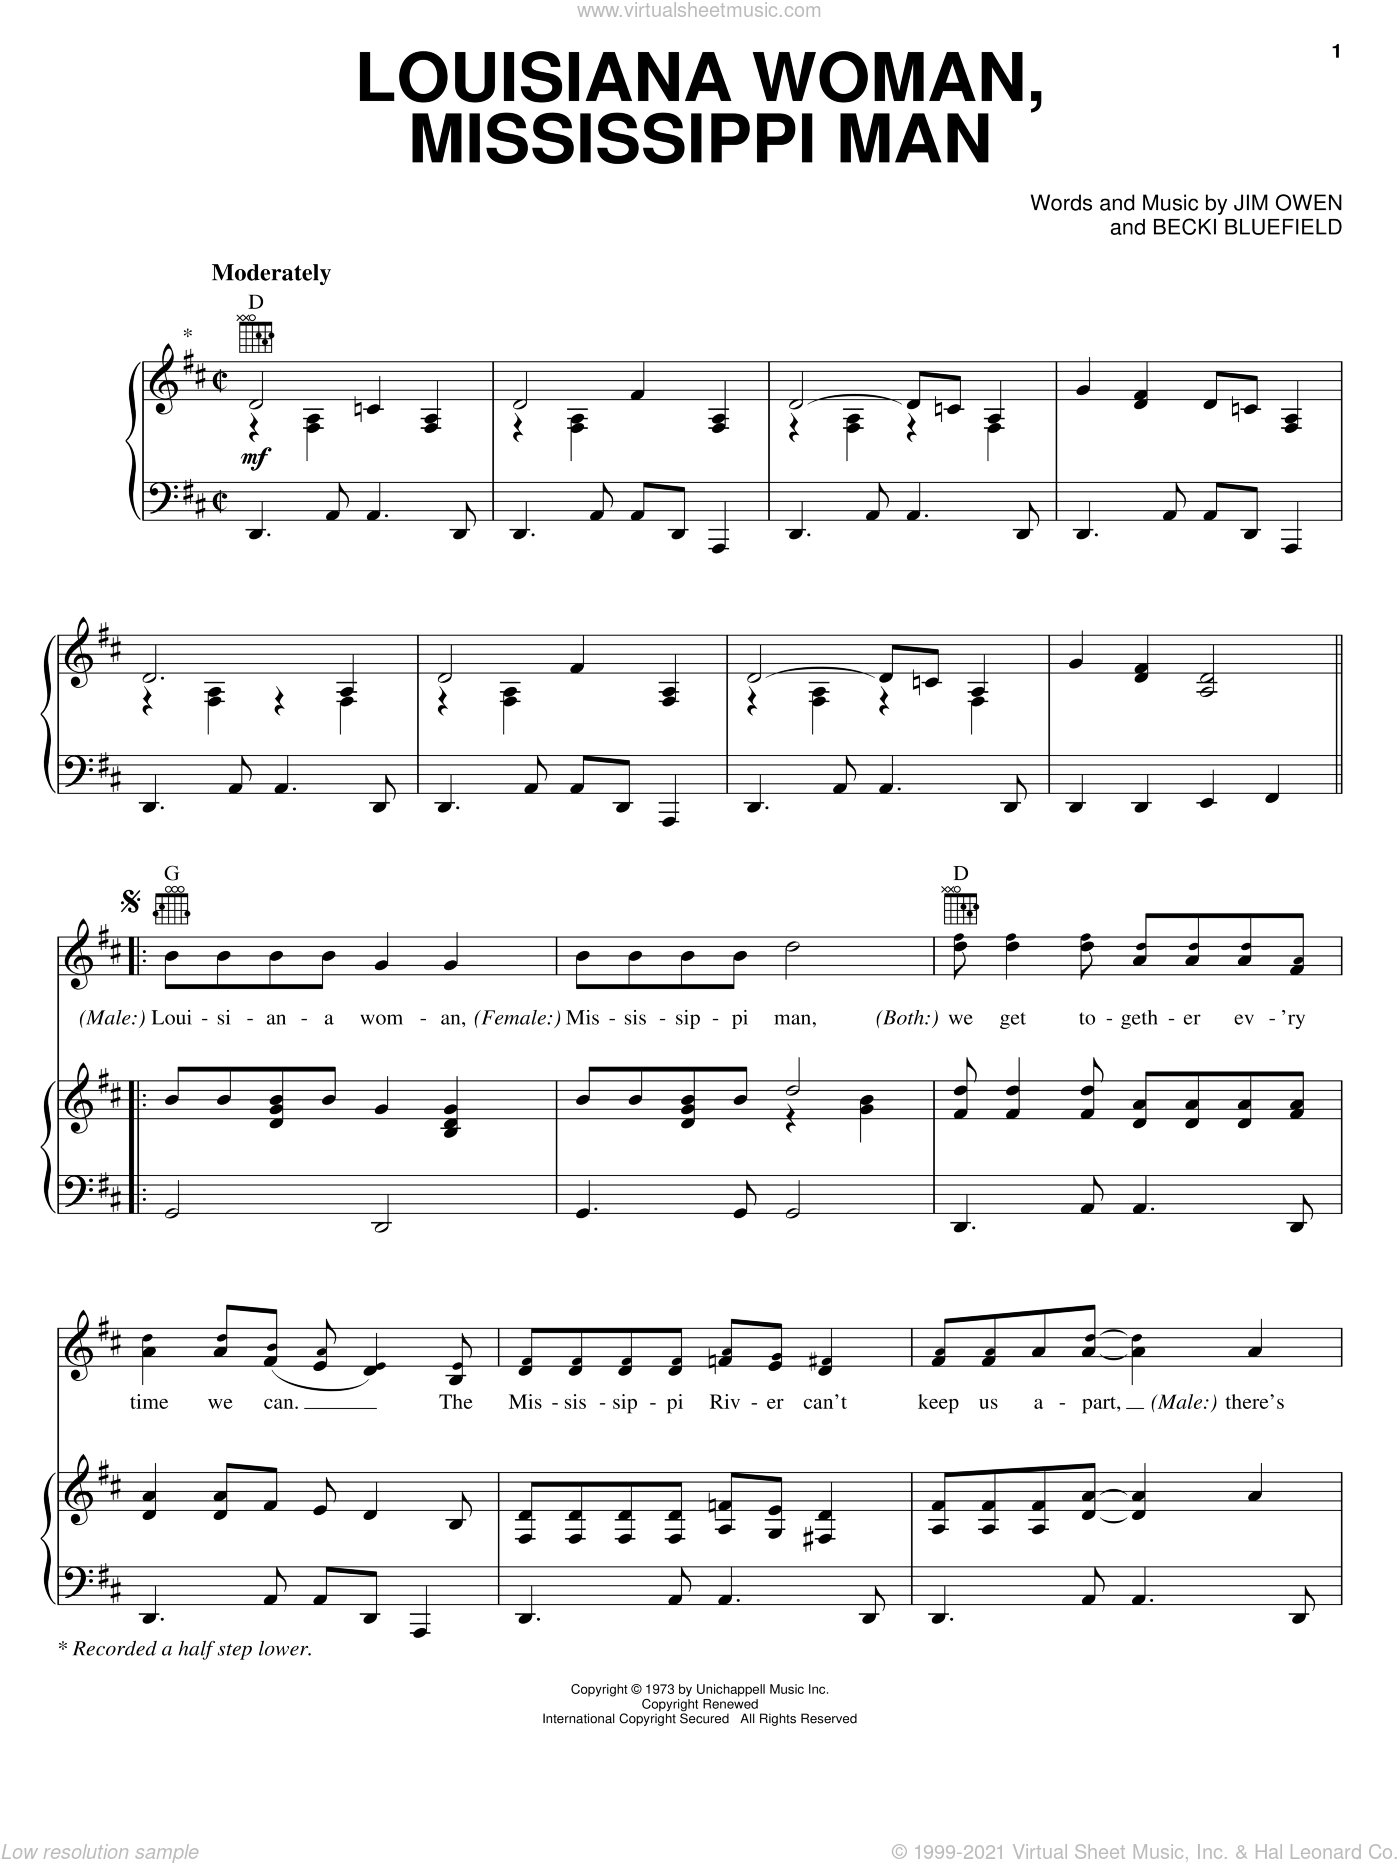 Louisiana Woman, Mississippi Man sheet music for voice, piano or guitar by Loretta Lynn, Conway Twitty, Becki Bluefield and Jim Owen, intermediate. Score Image Preview.